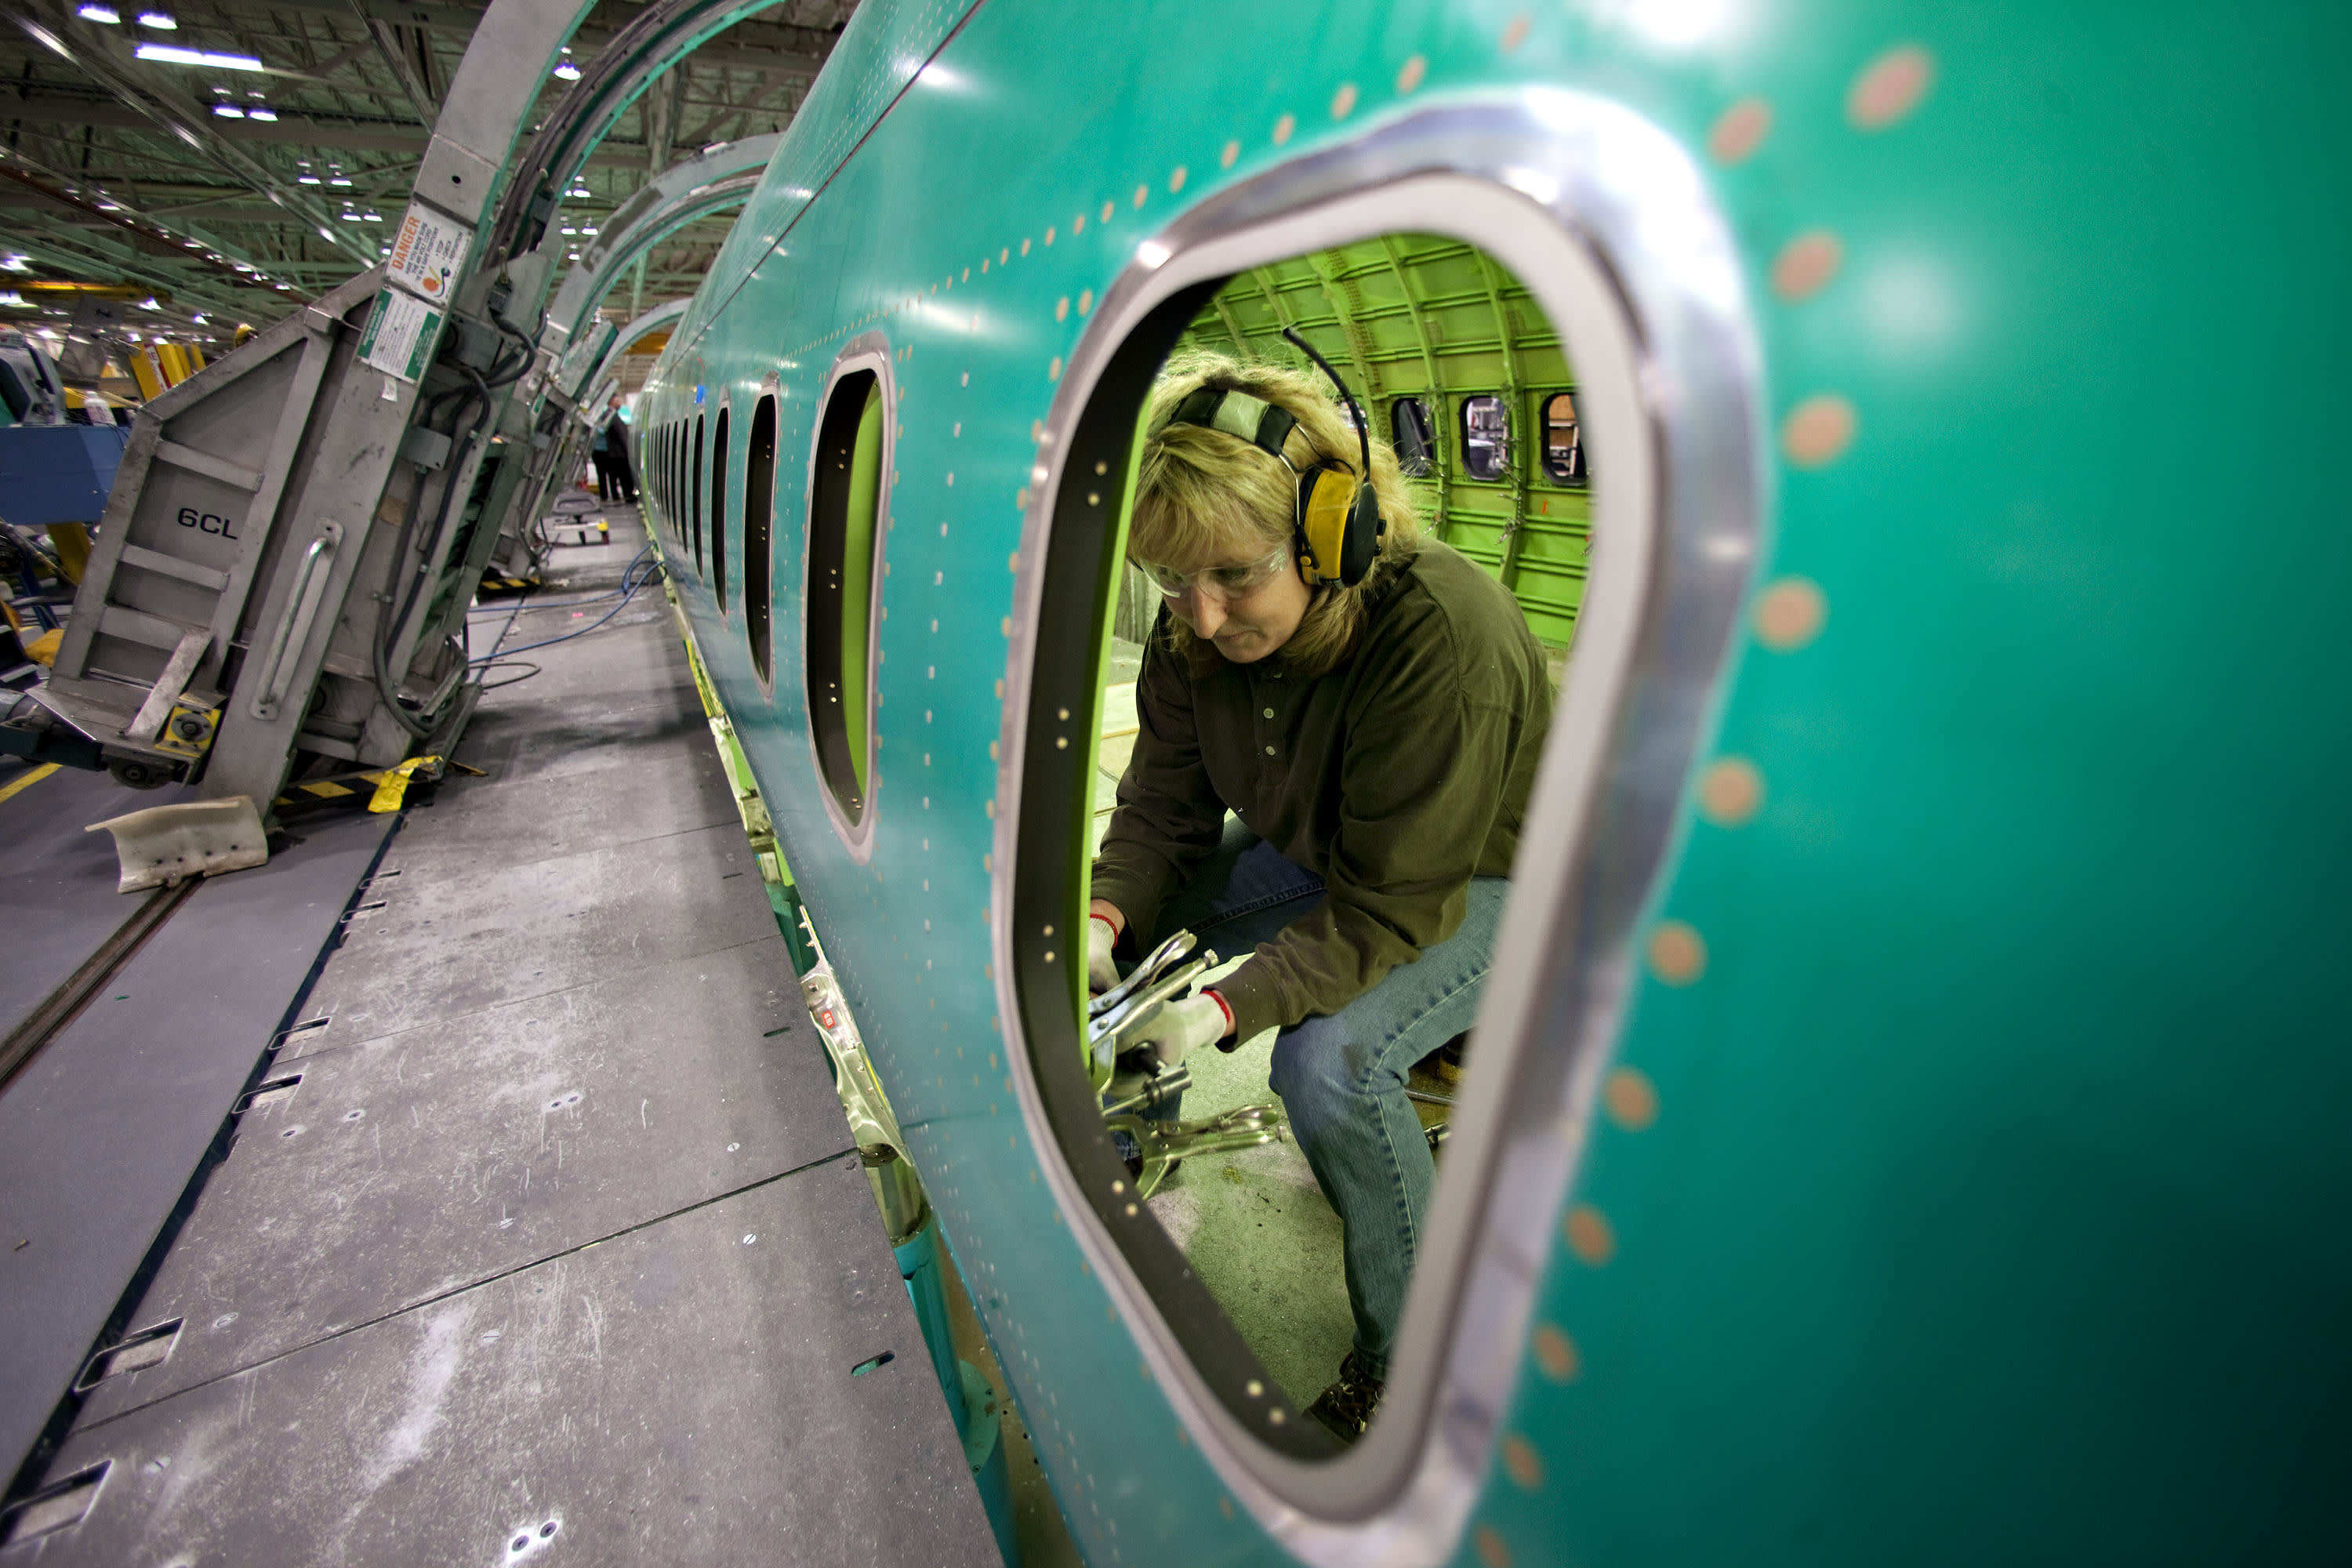 Boeing 737 Max supplier Spirit Aerosystems to cut 2,800 jobs as workers feel pain of grounding